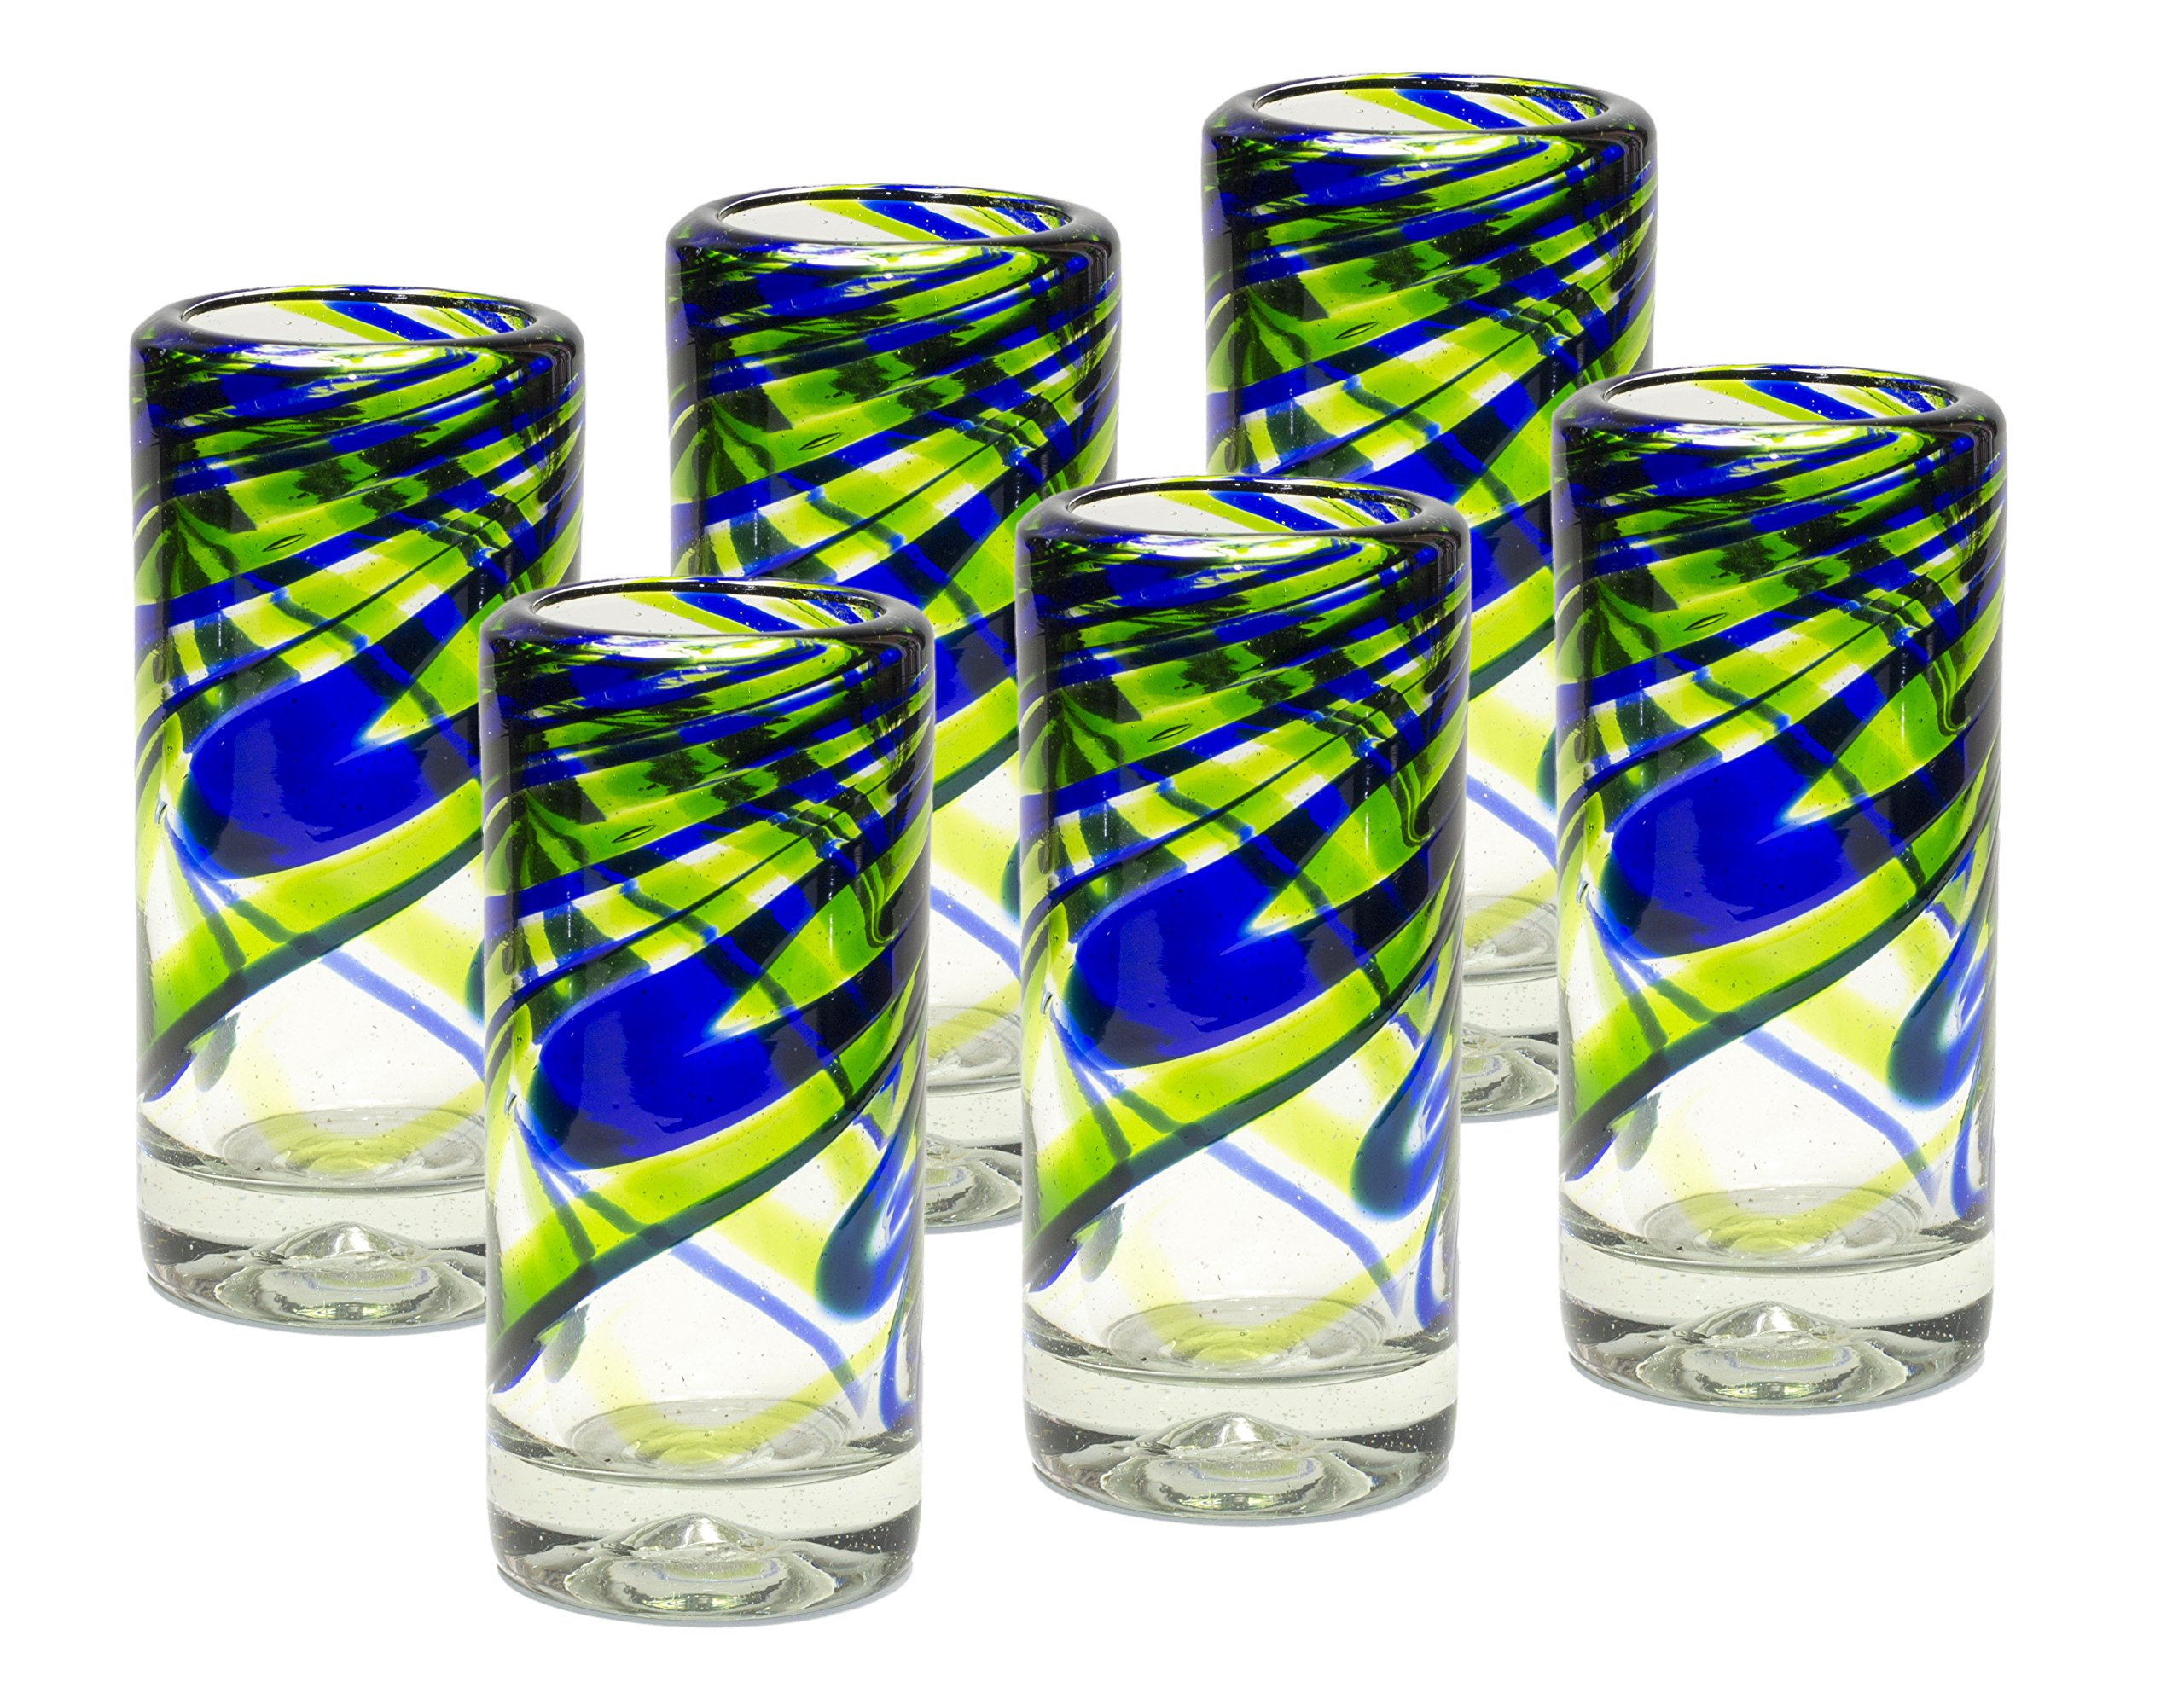 Mexican Hand Blown Glass Blue and Green Shots Tequila Recycled Glass 2 oz - Original Artisan (6 Pack)